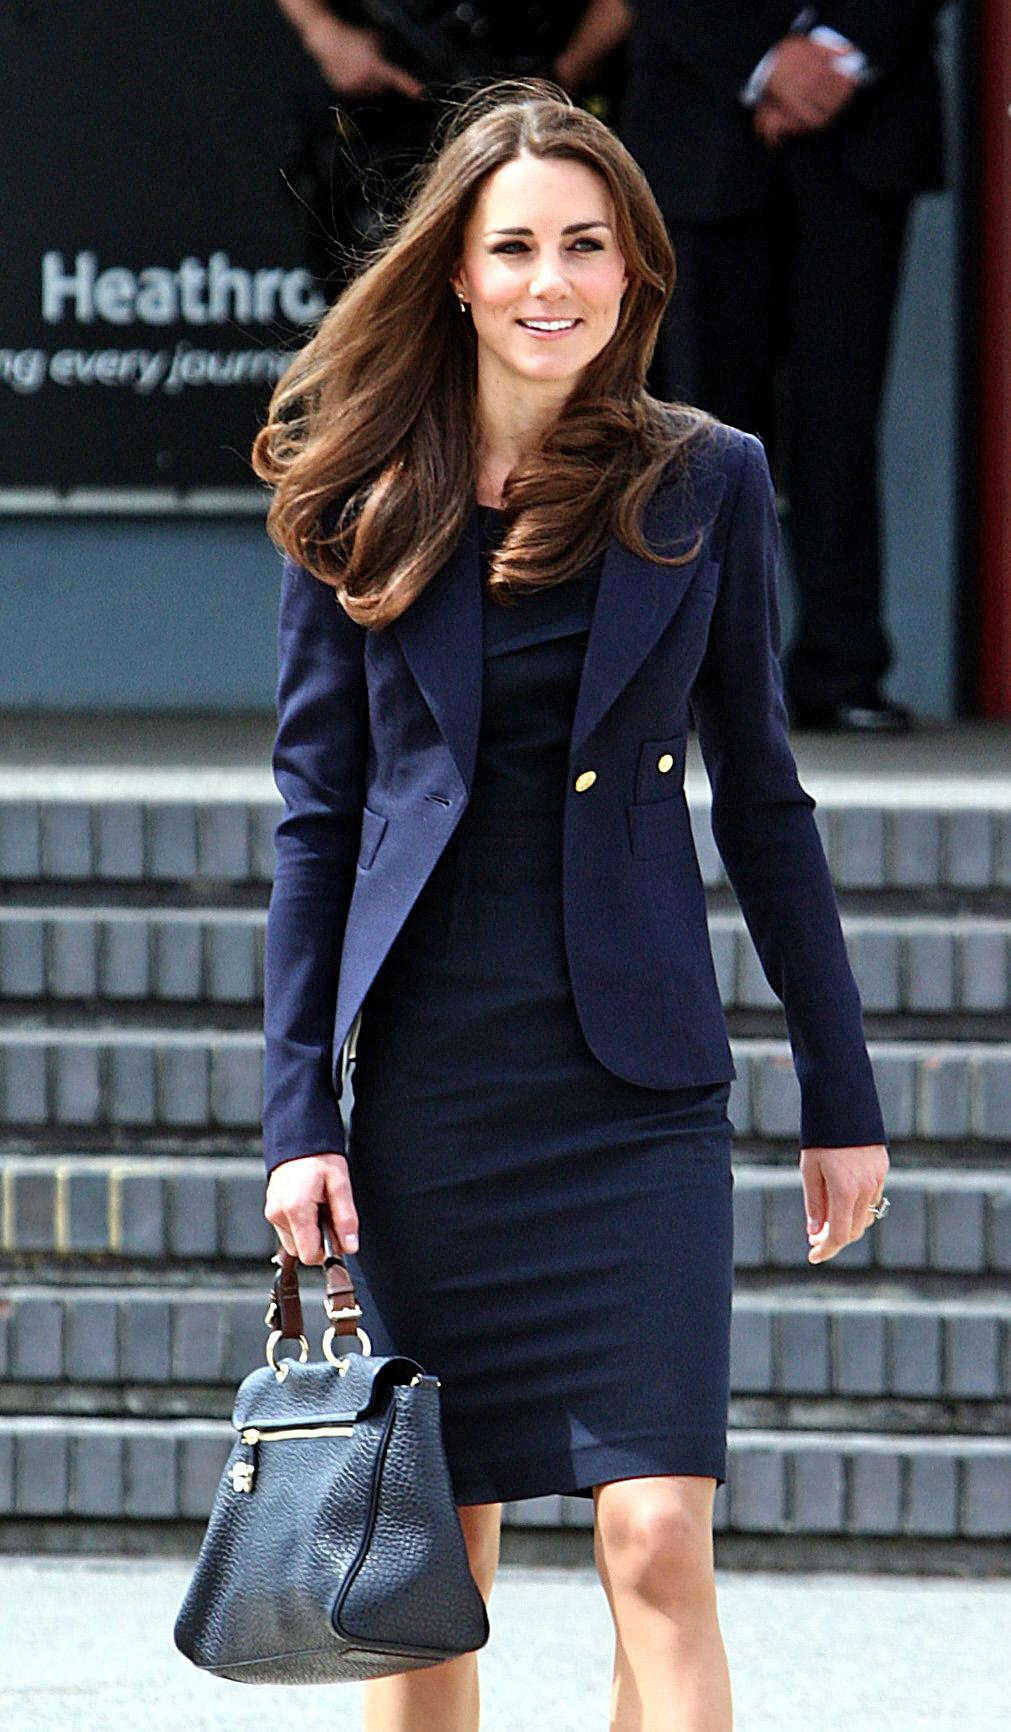 Kate and Wills Canadian Tour - Day 1